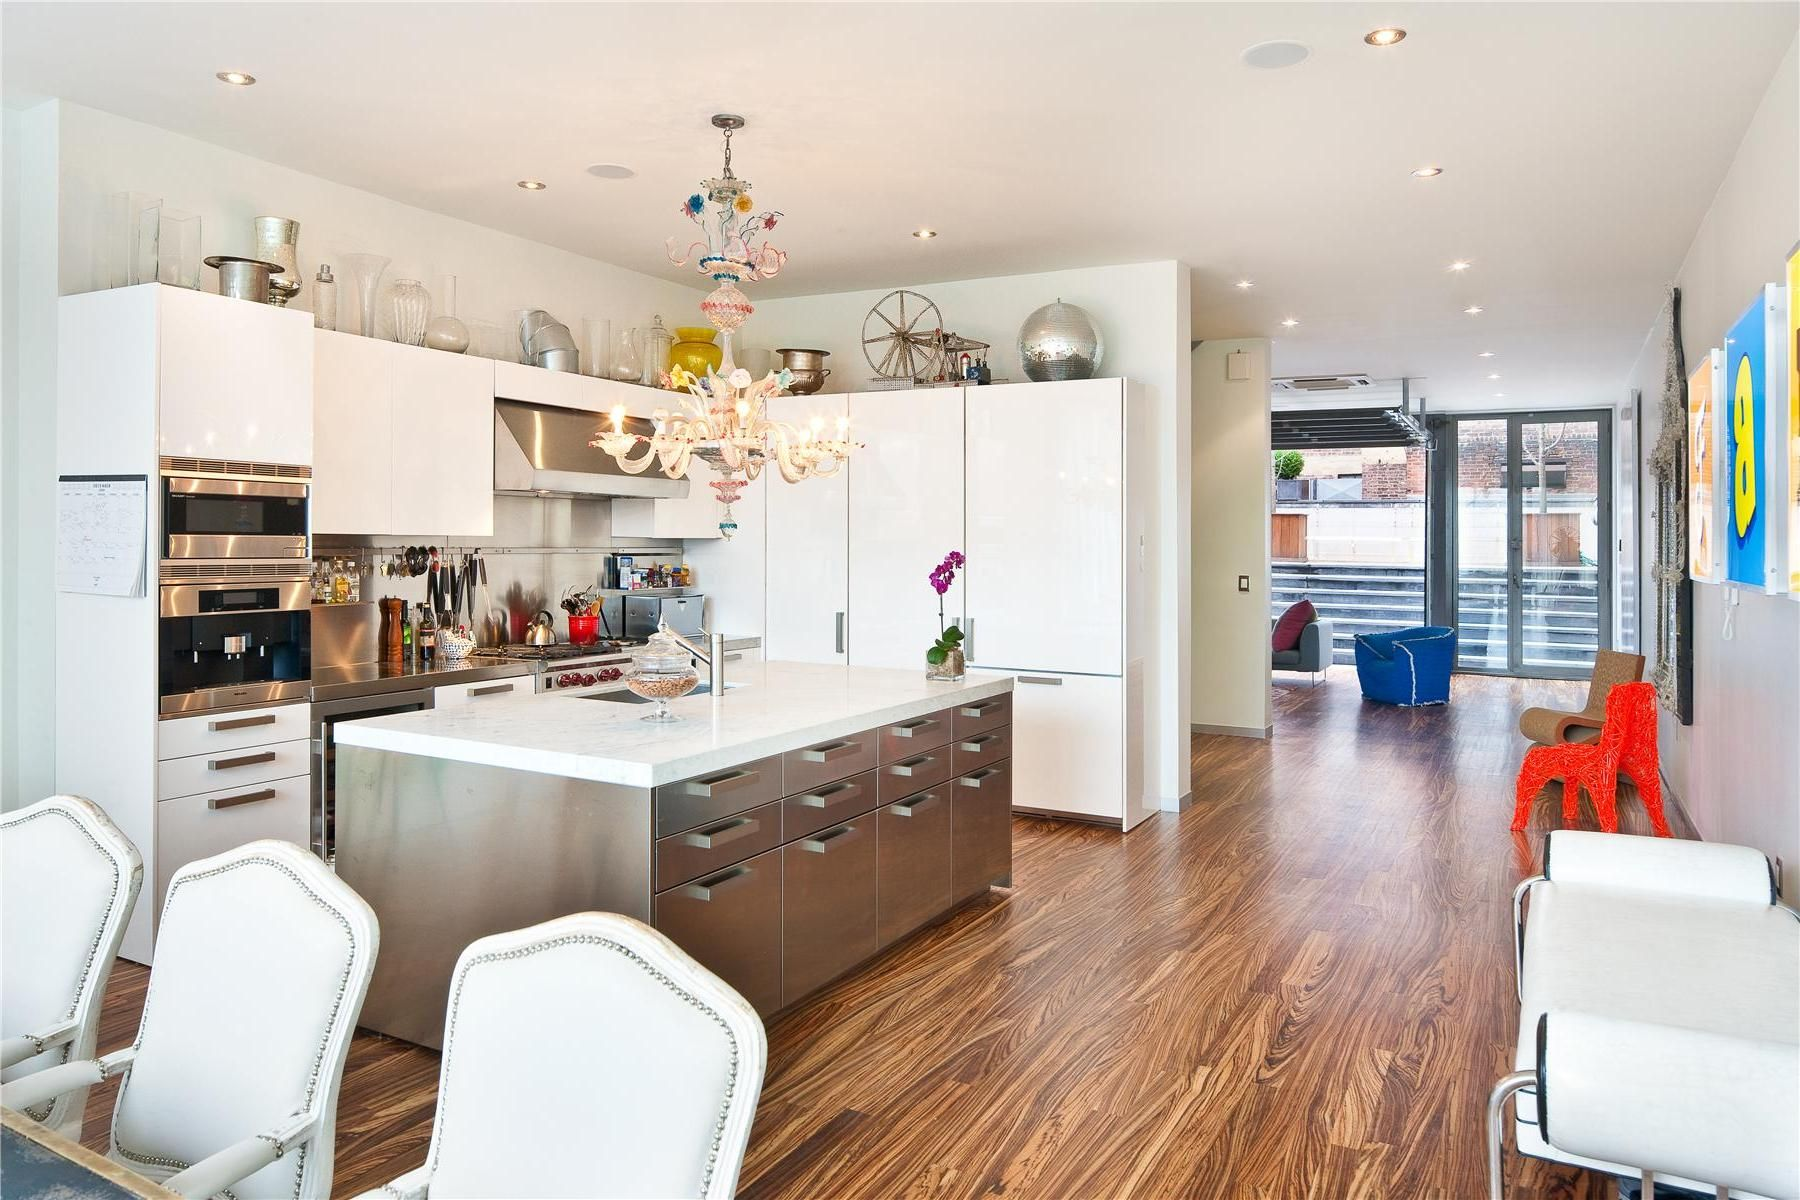 400 West Street Residence in New York City�s West Village